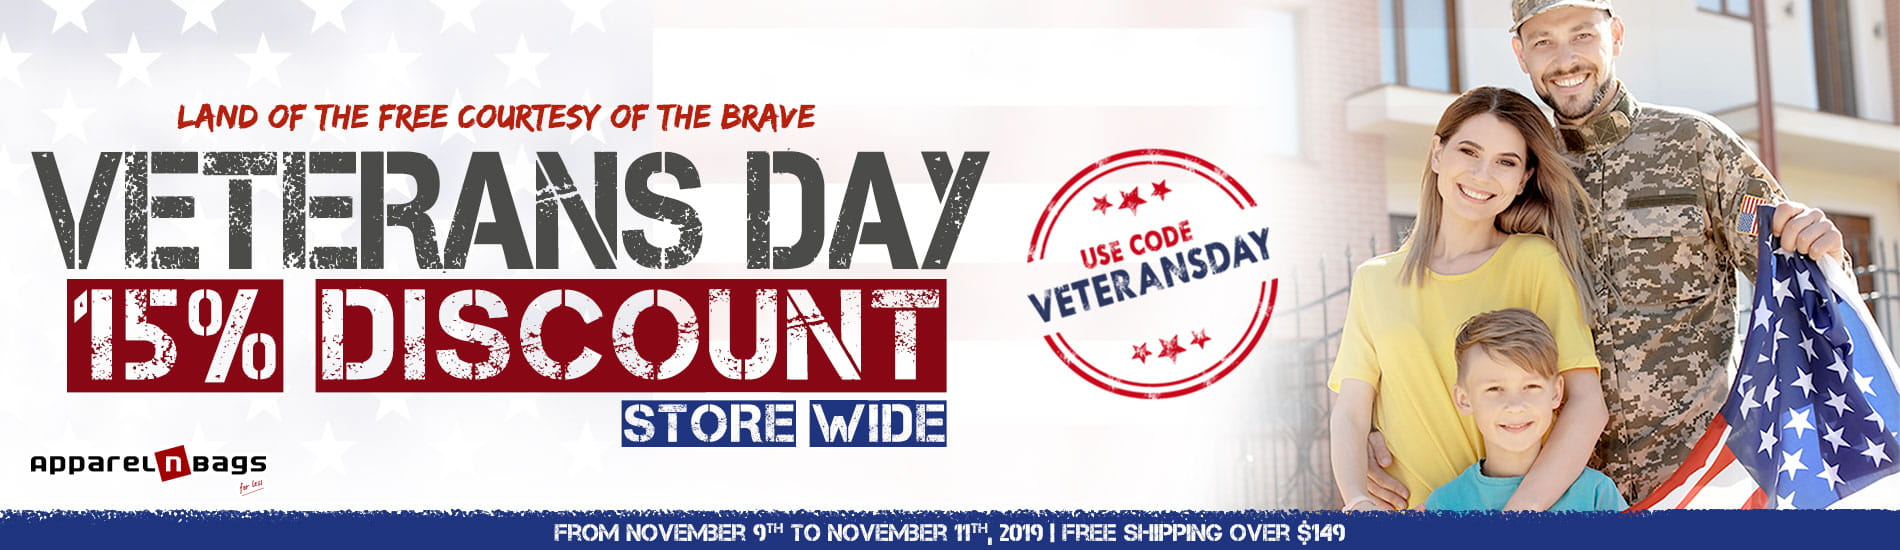 Veterans Day Sale 2019